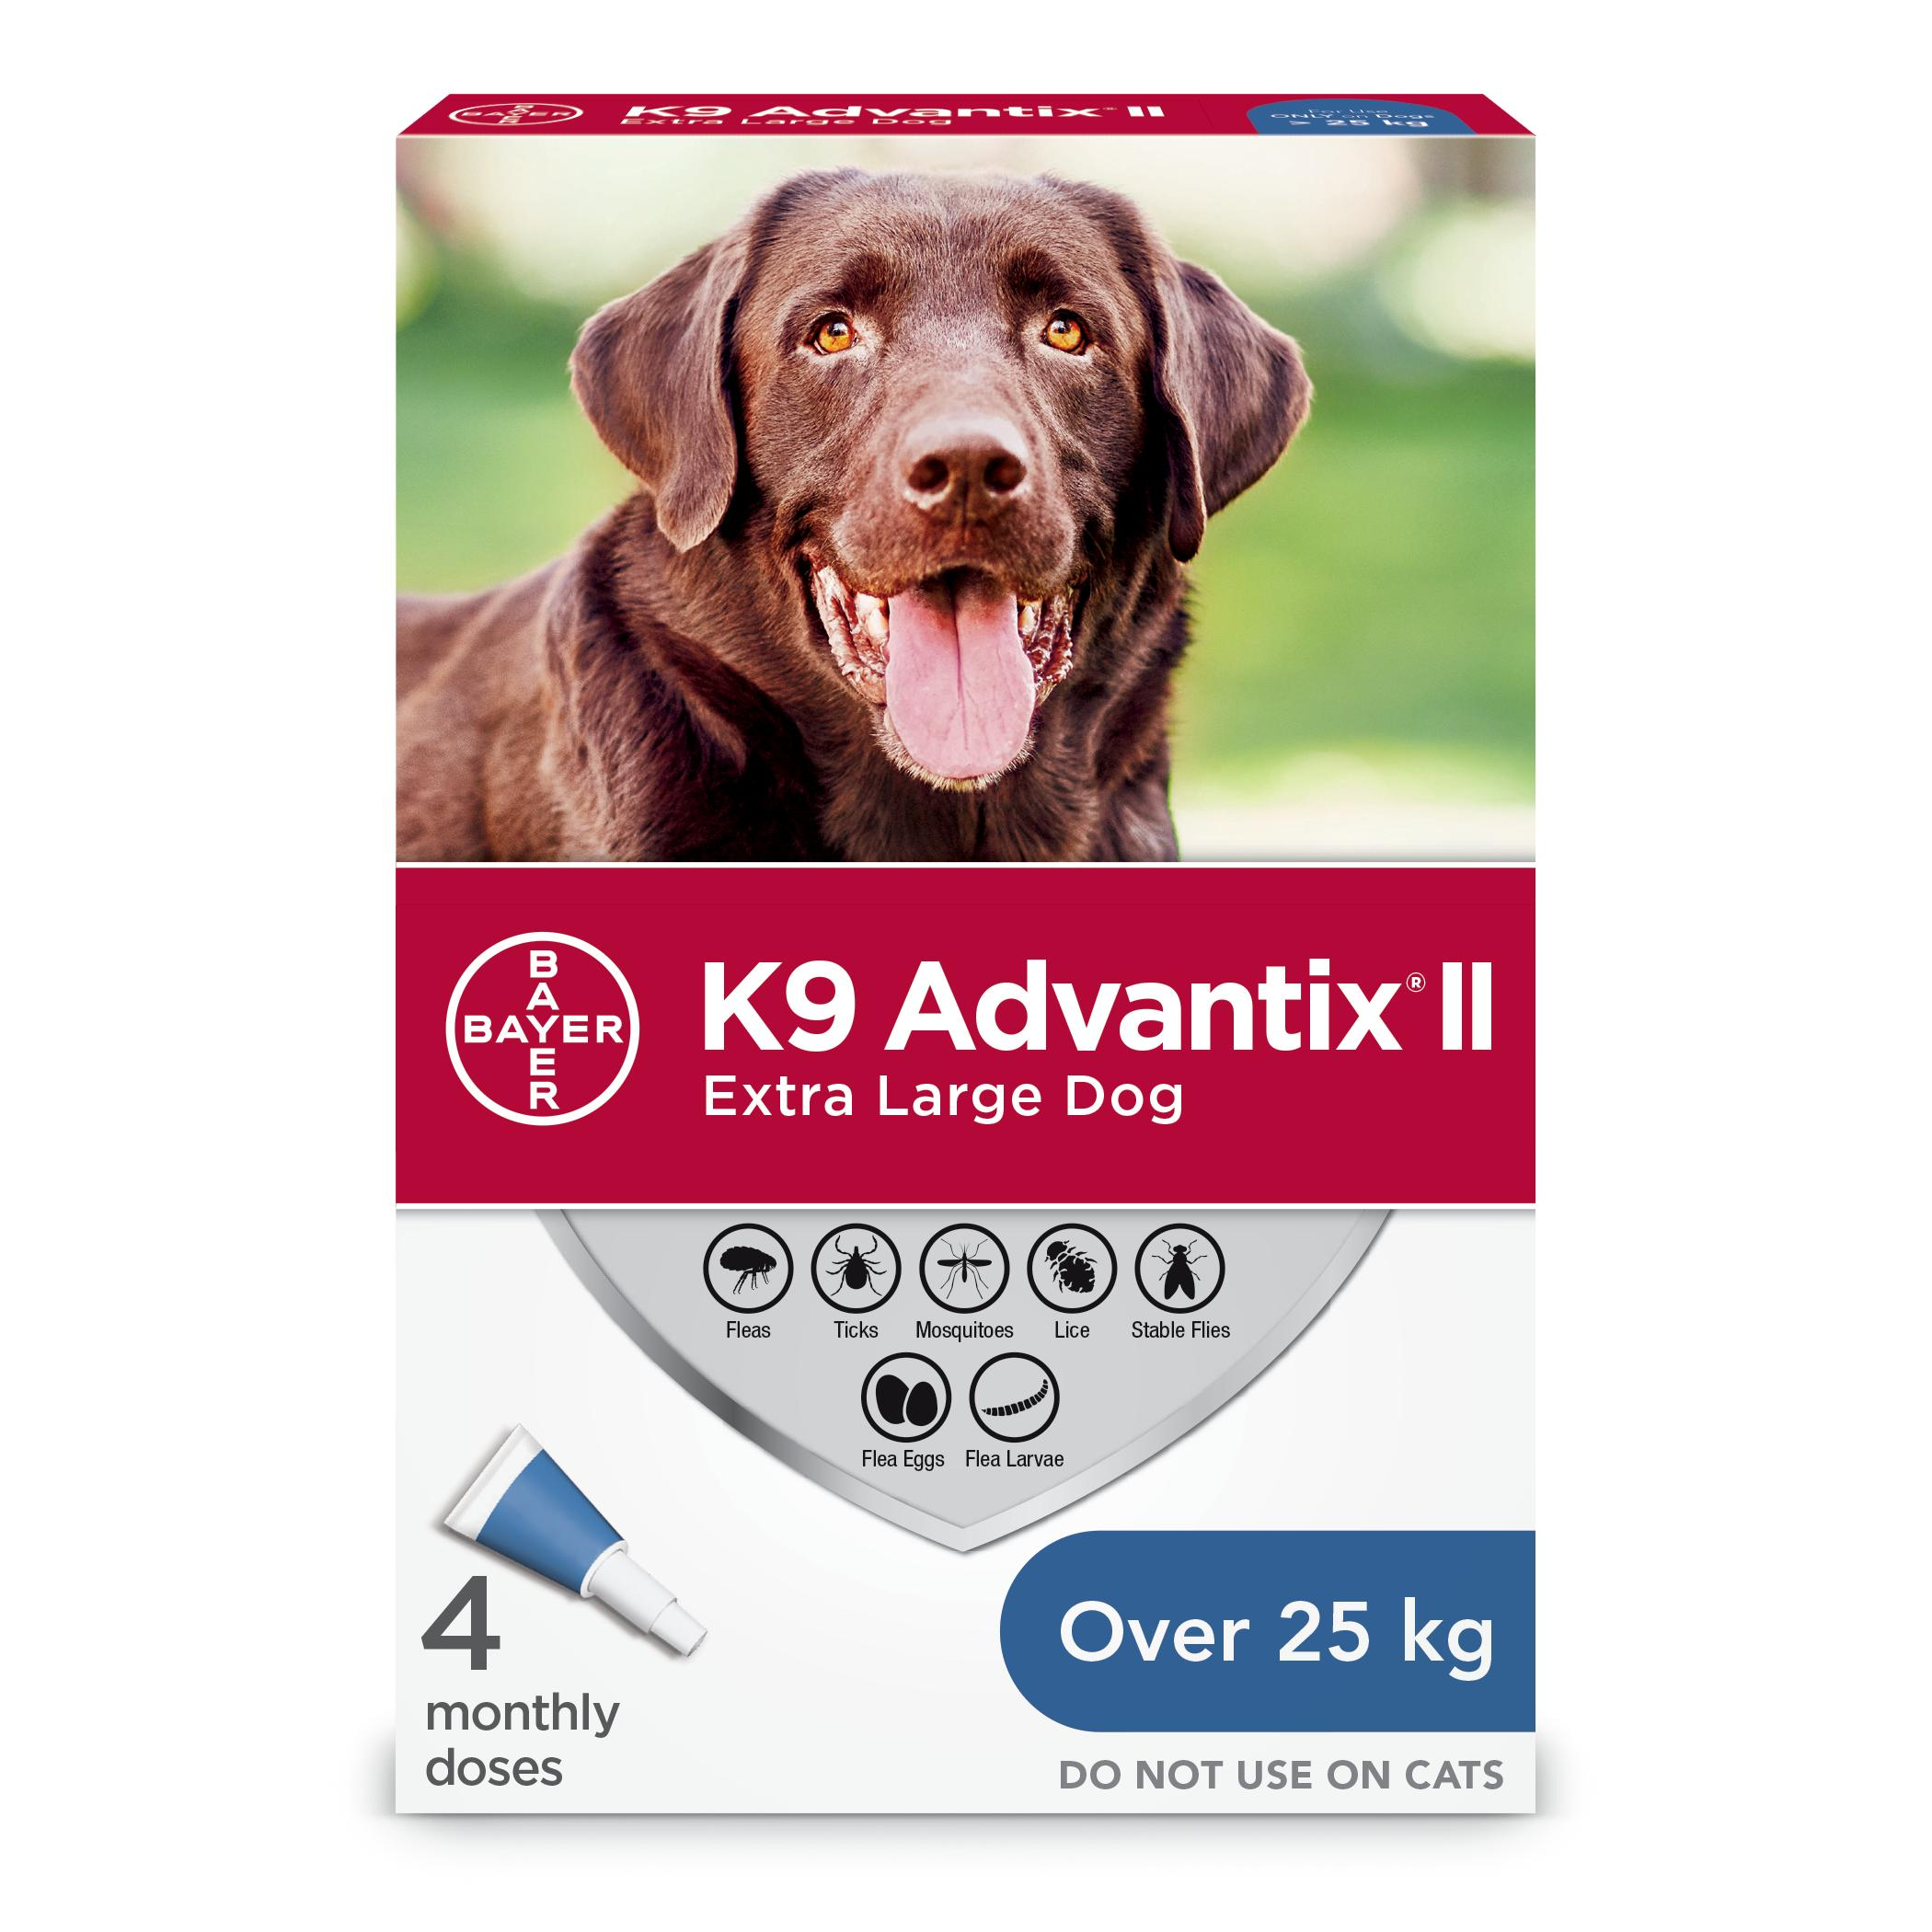 Bayer K9 Advantix II Flea Protection for Extra Large Dogs over 25-kg, 4-pk